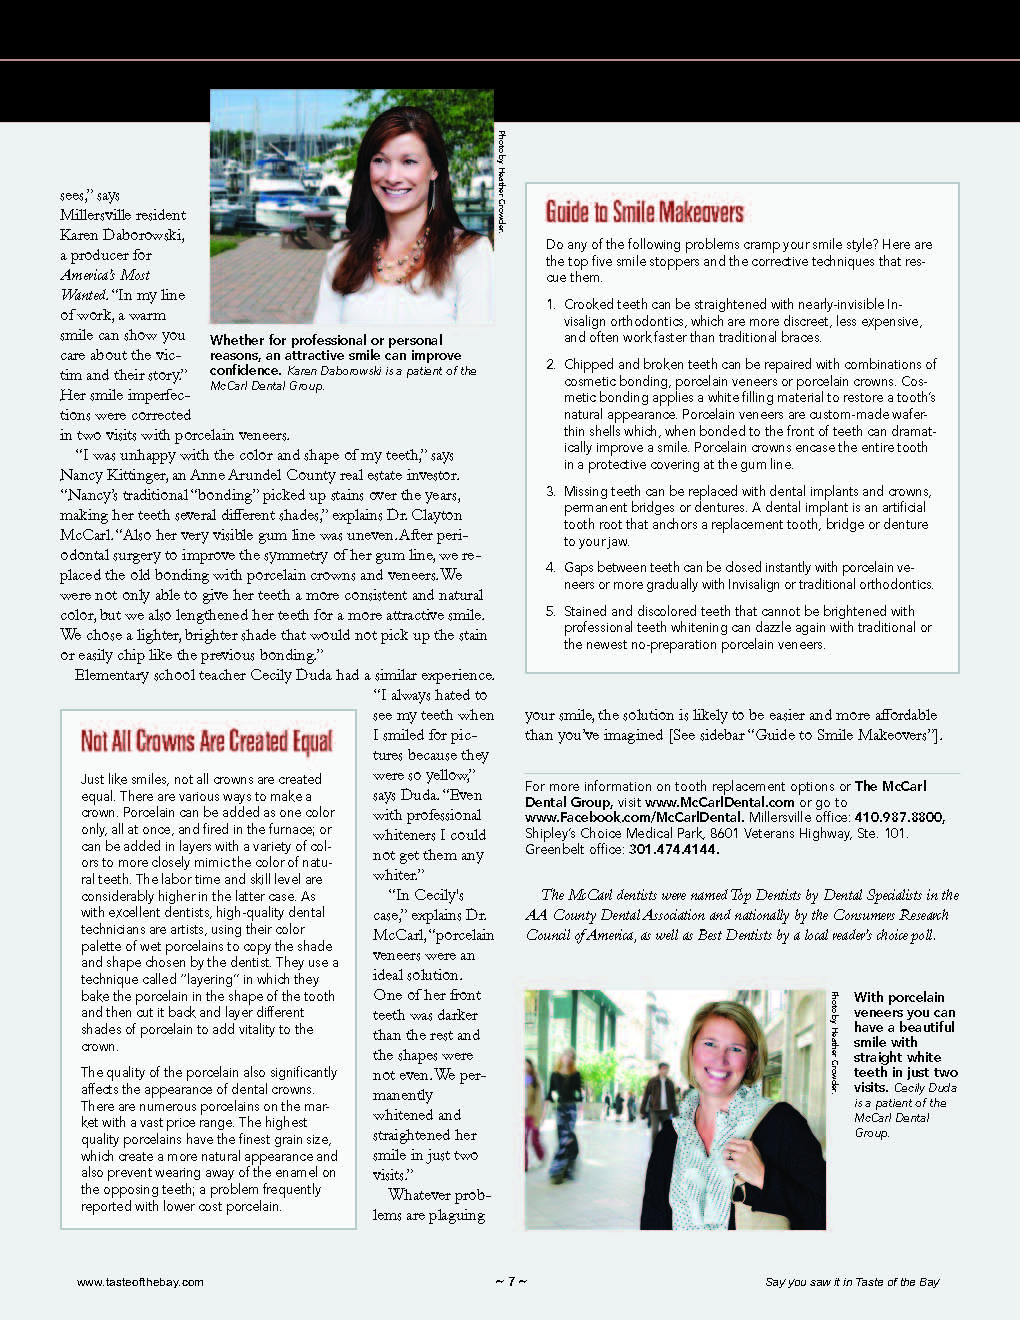 Boost Your Success with a Smile Page 2